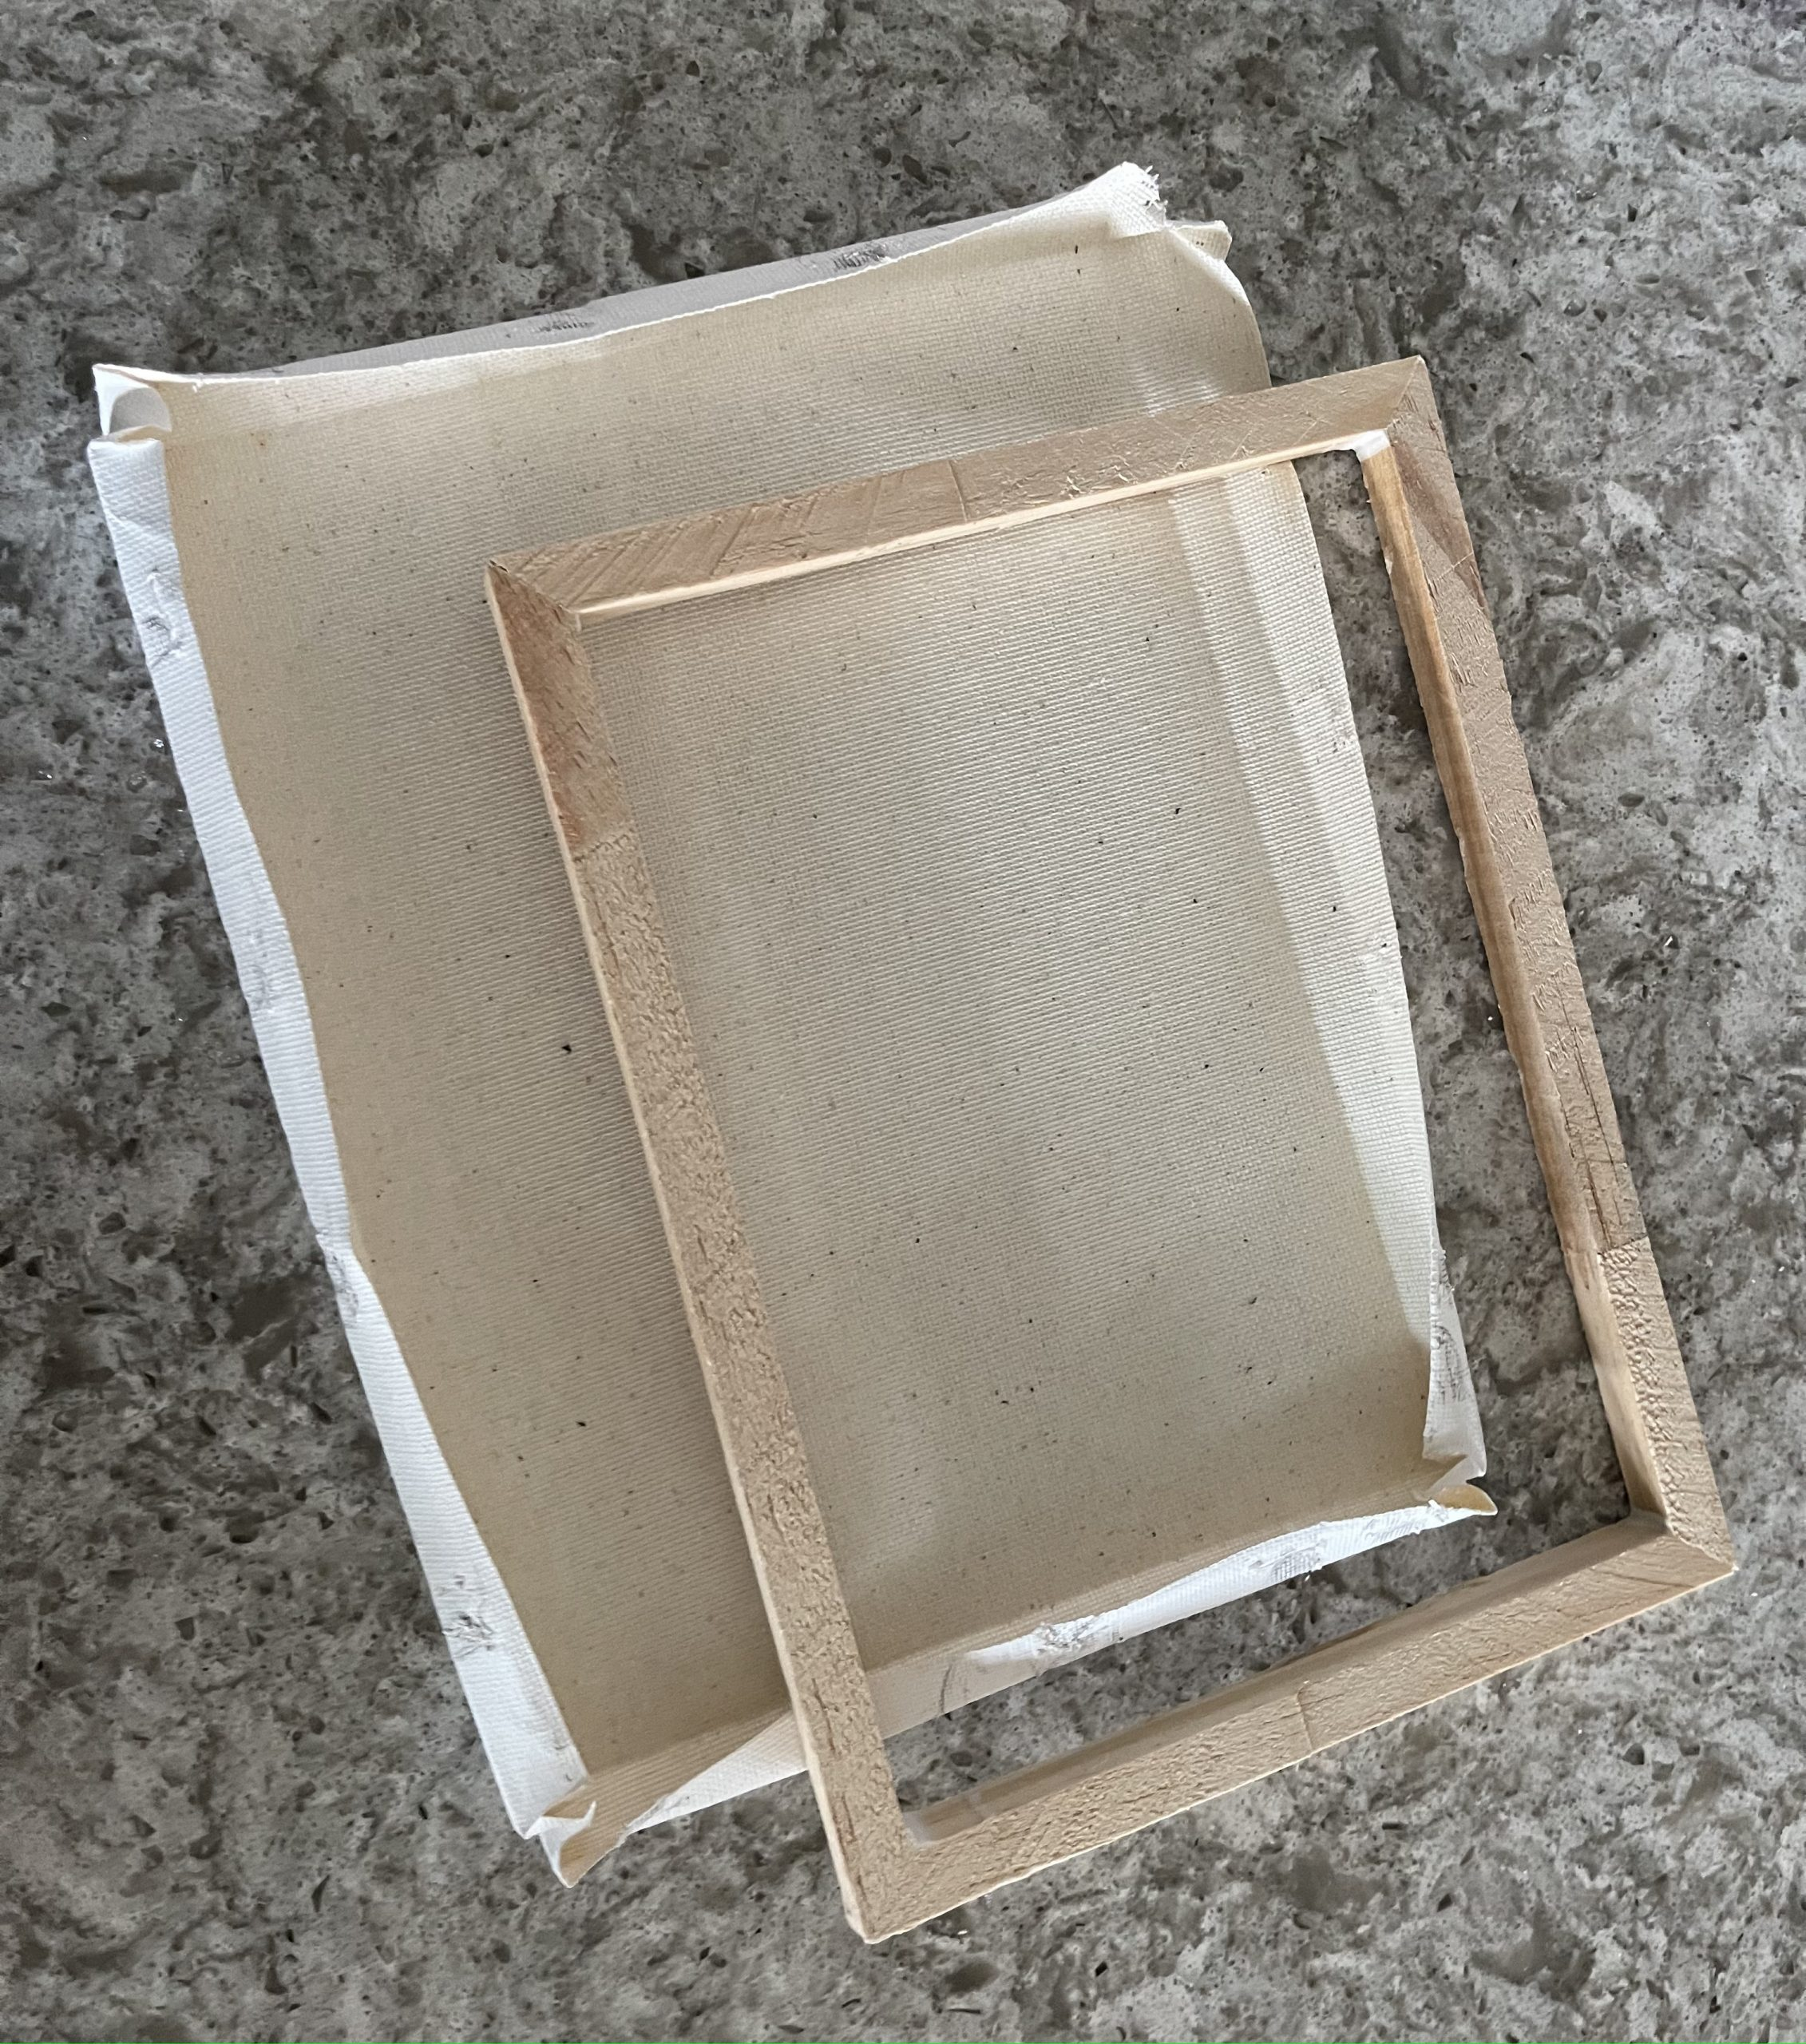 removing canvas from wooden frame